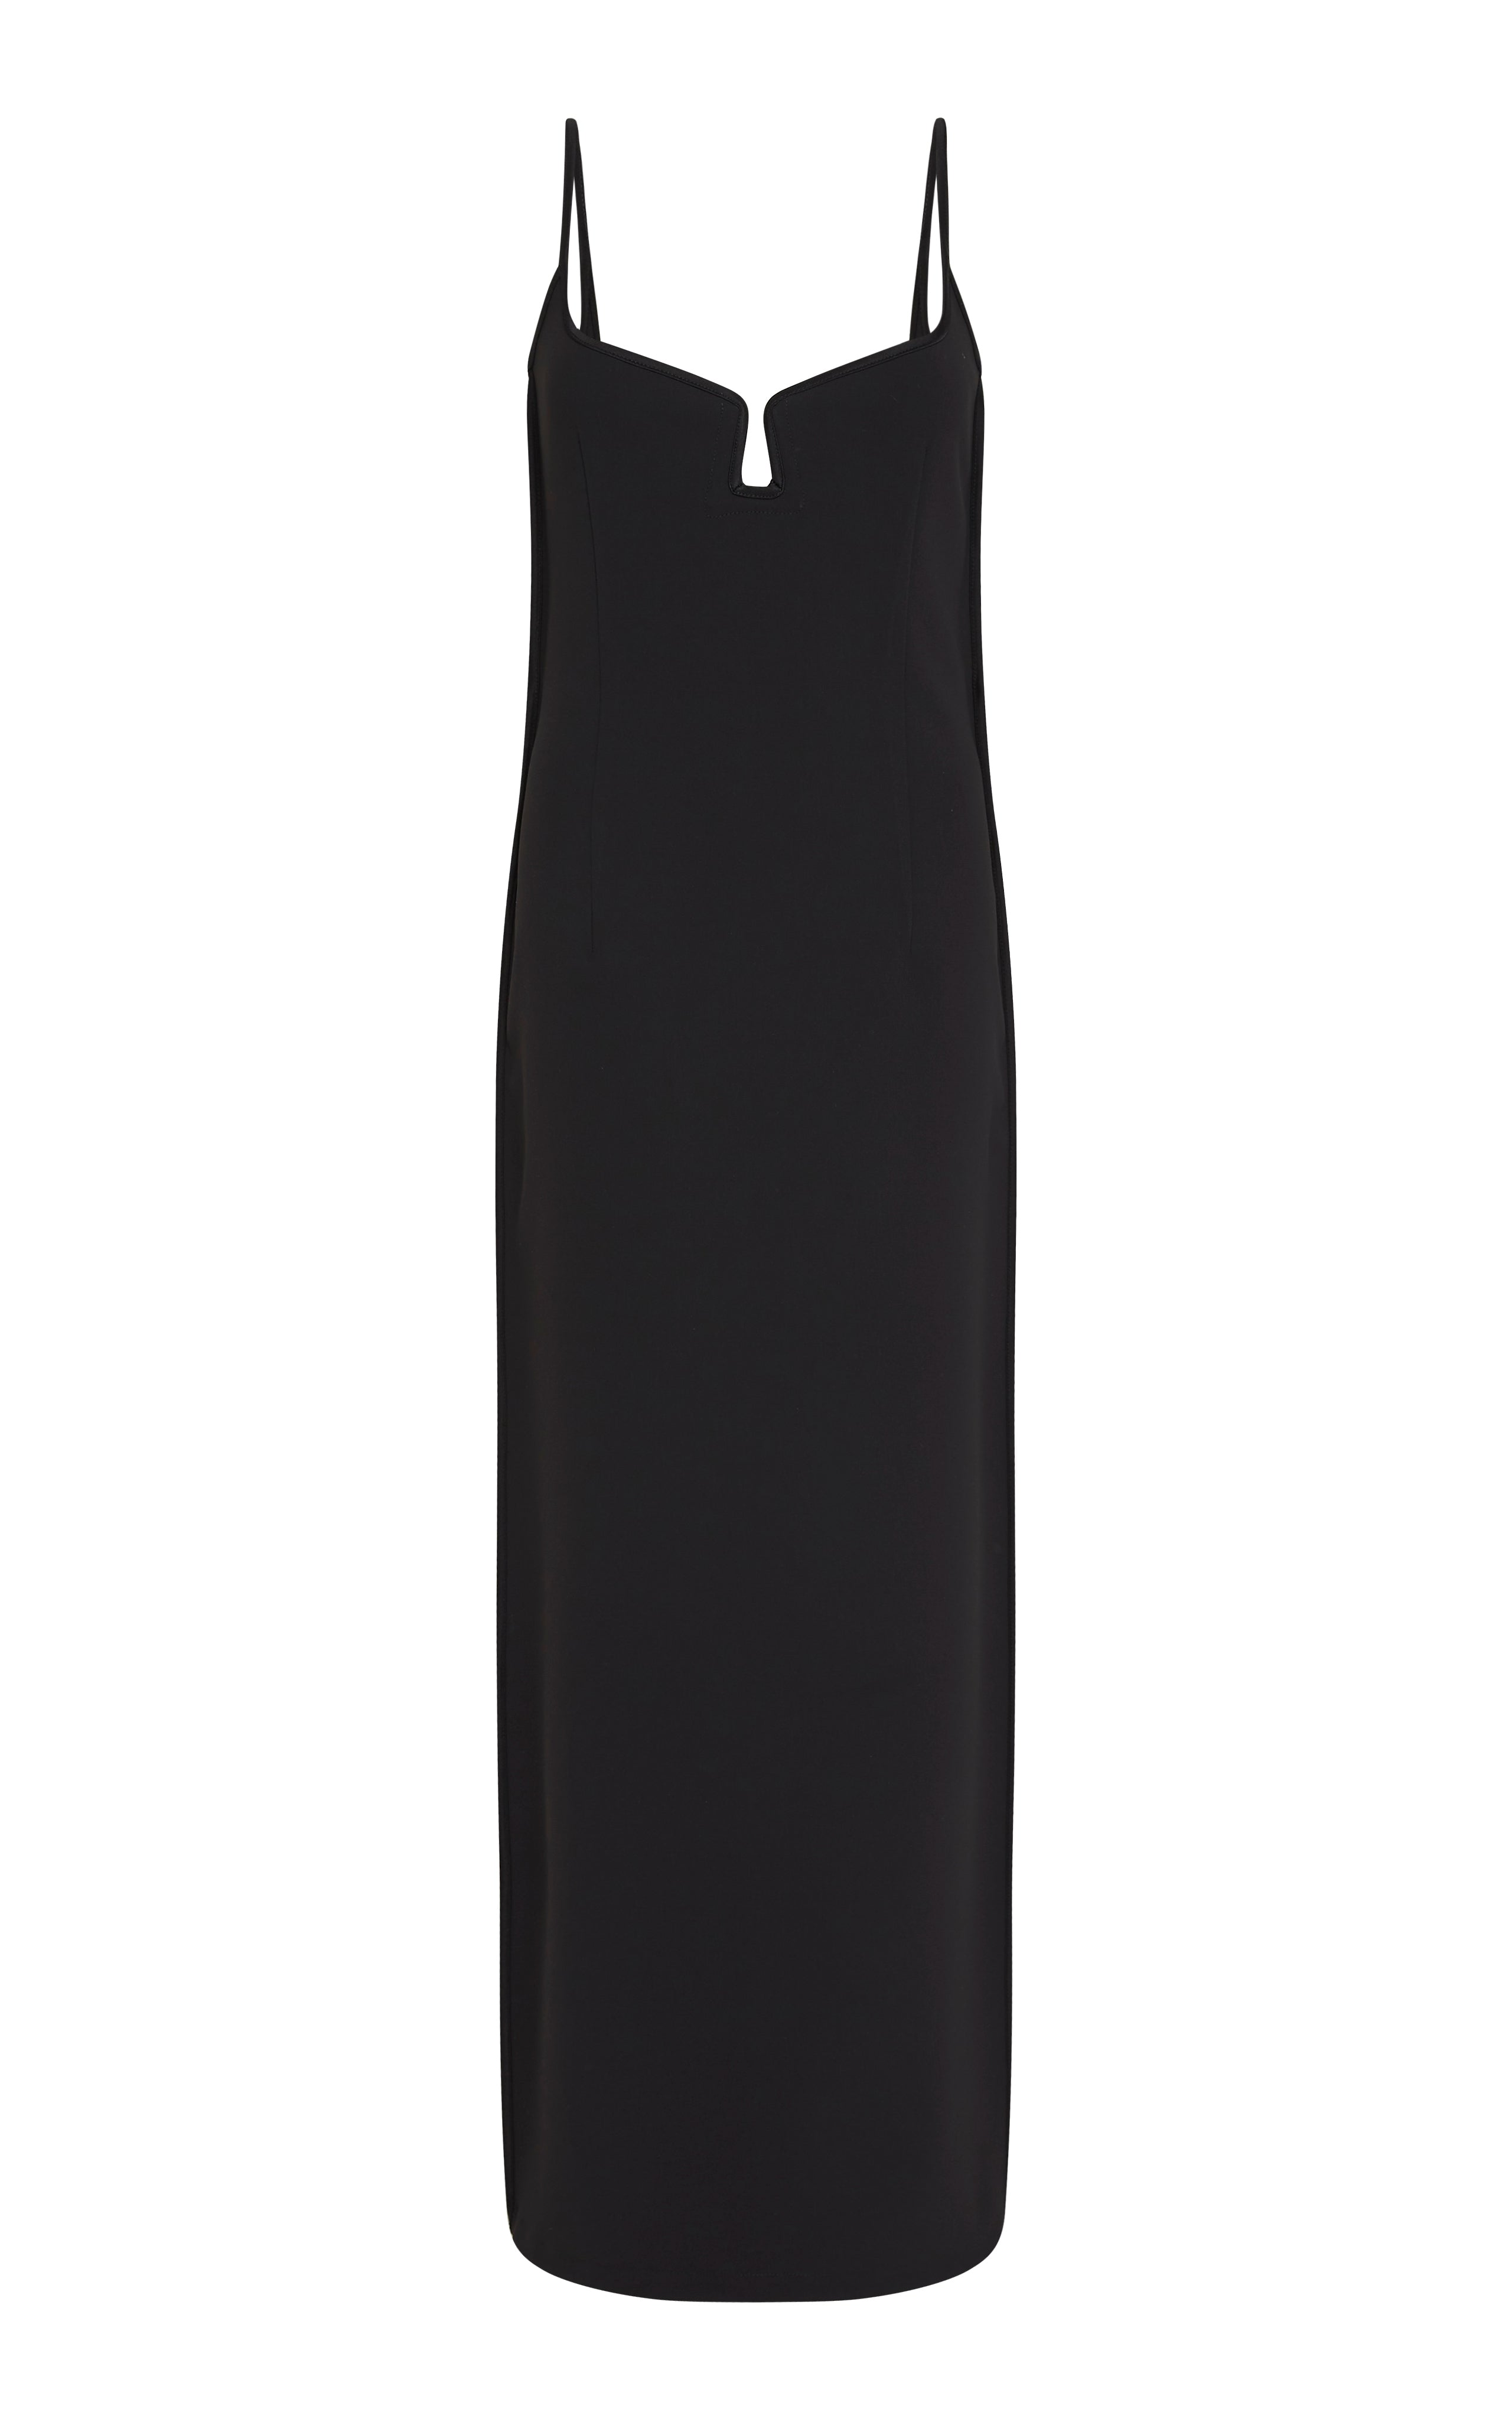 03 Marlo Dress | Black